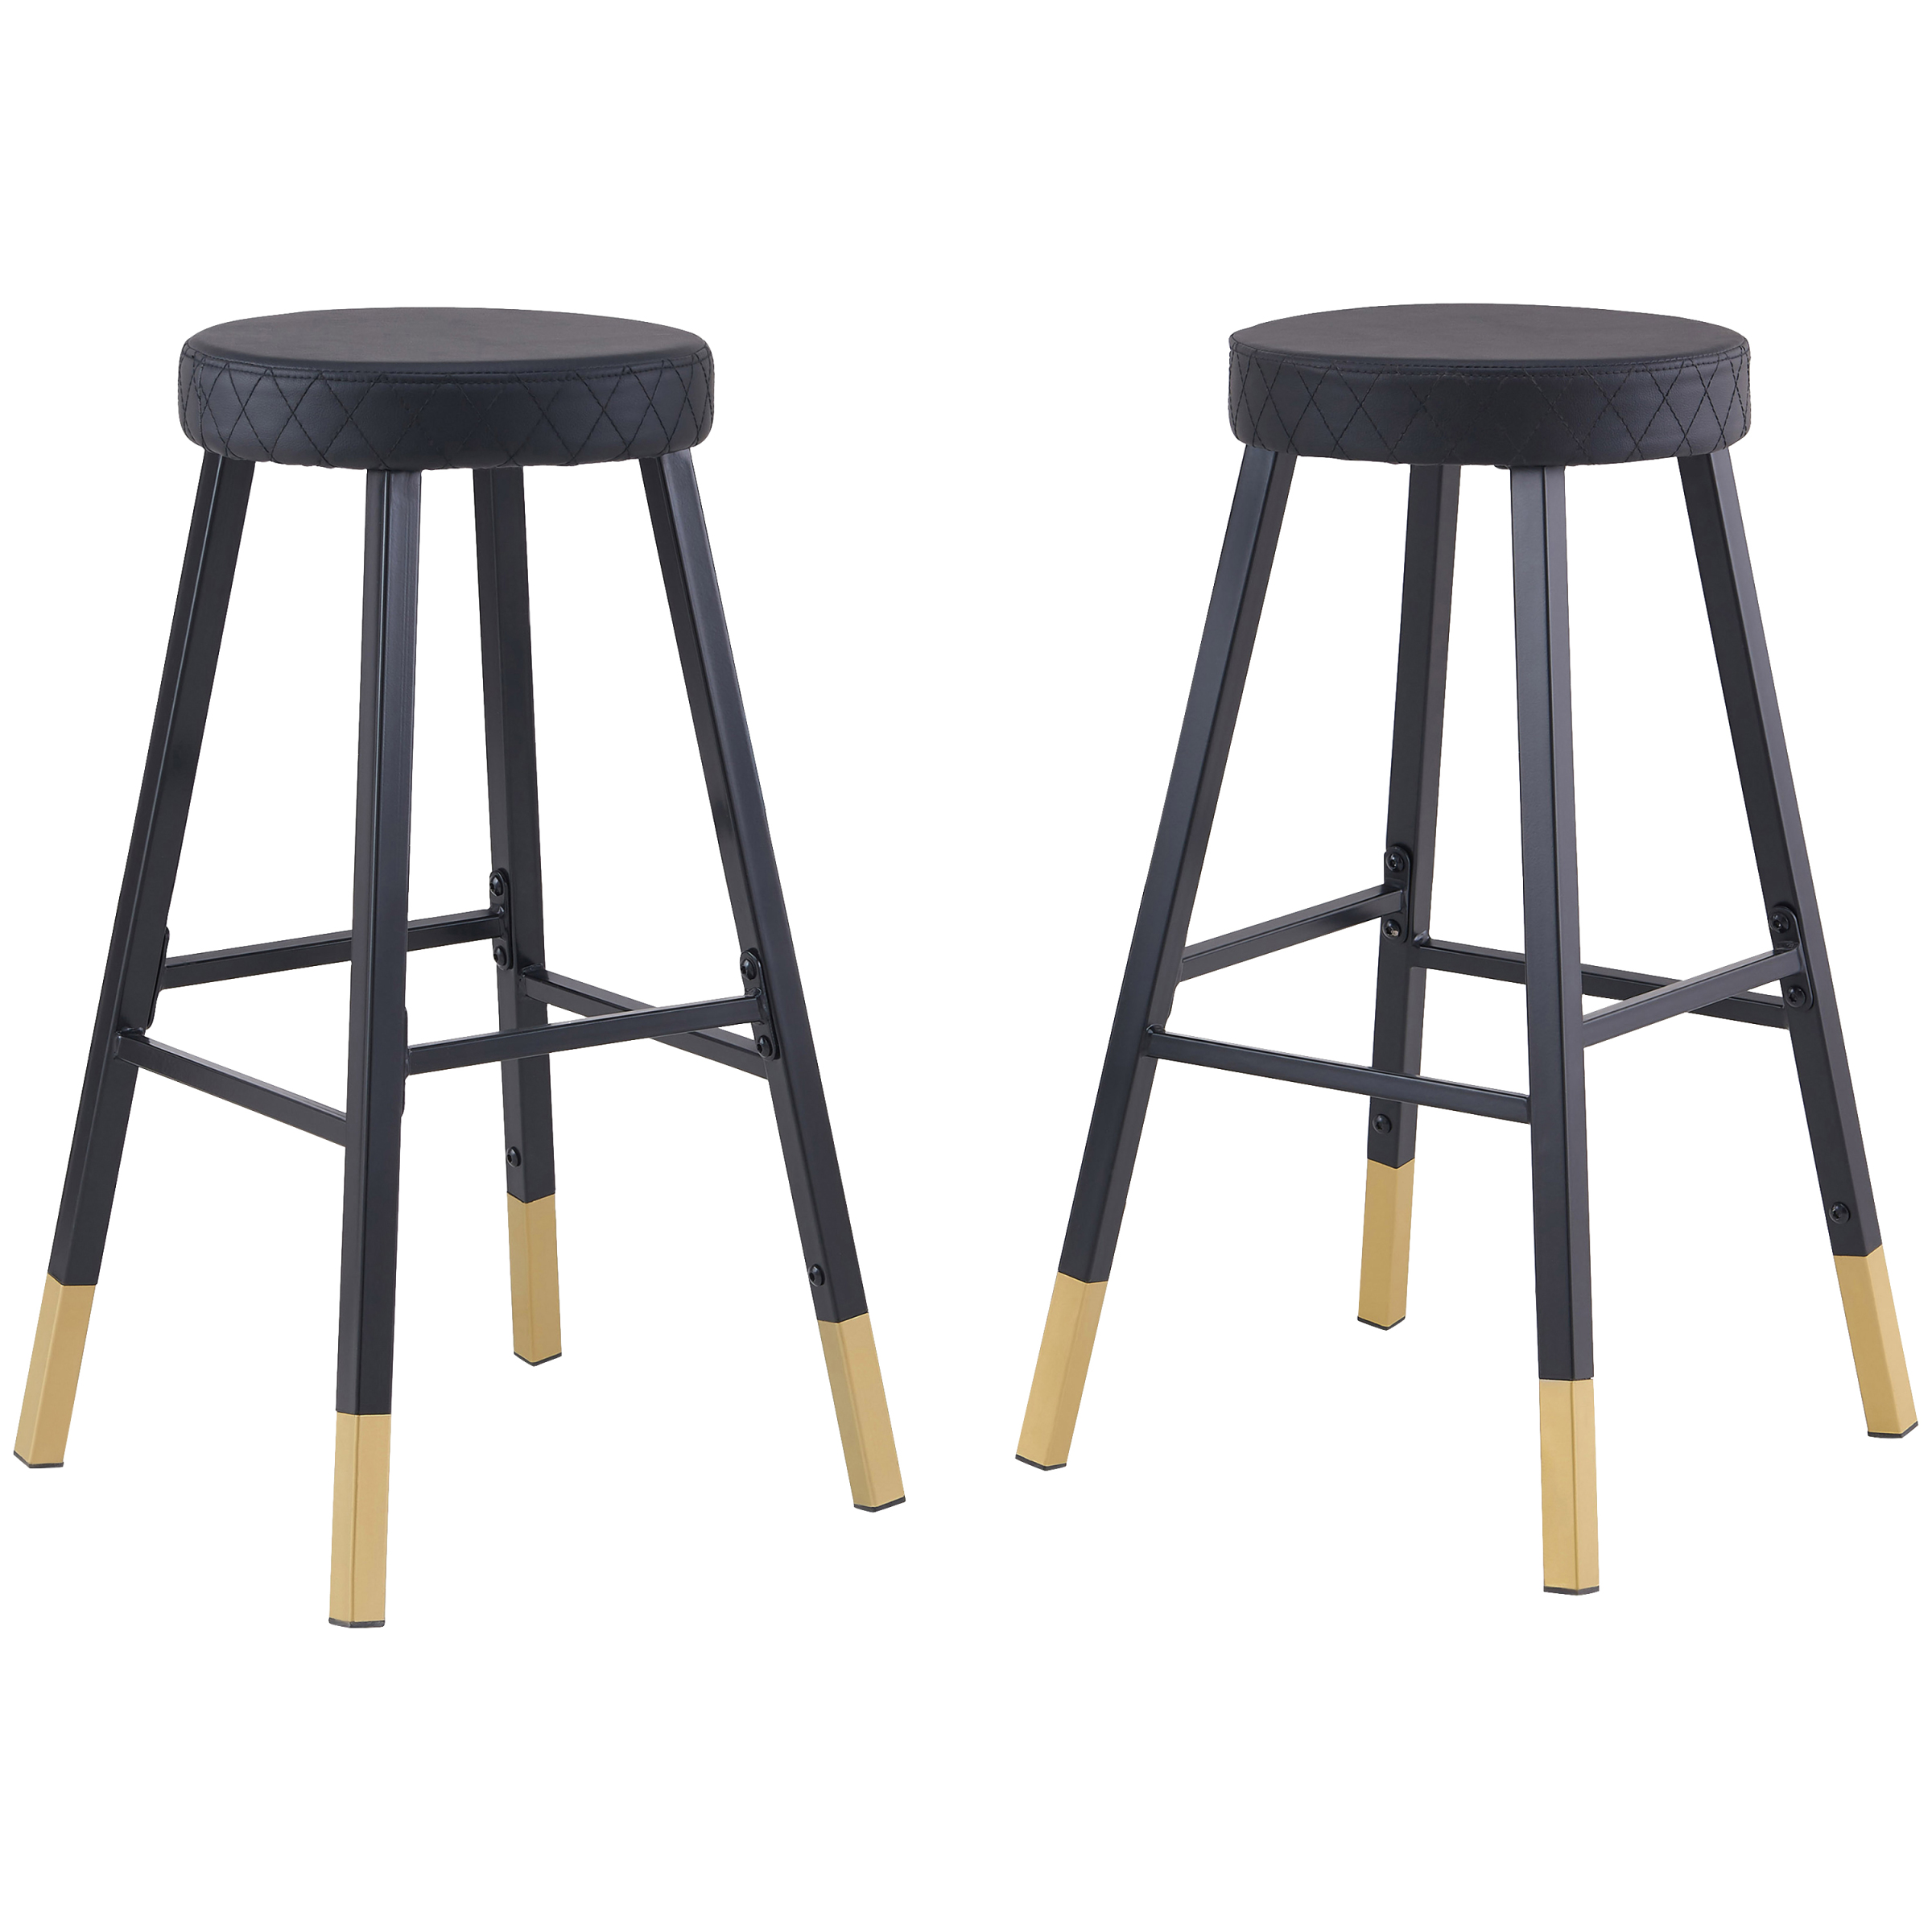 2 Pack Mainstays Metal Dipped Leg Backless Bar Stools (Black and Gold)